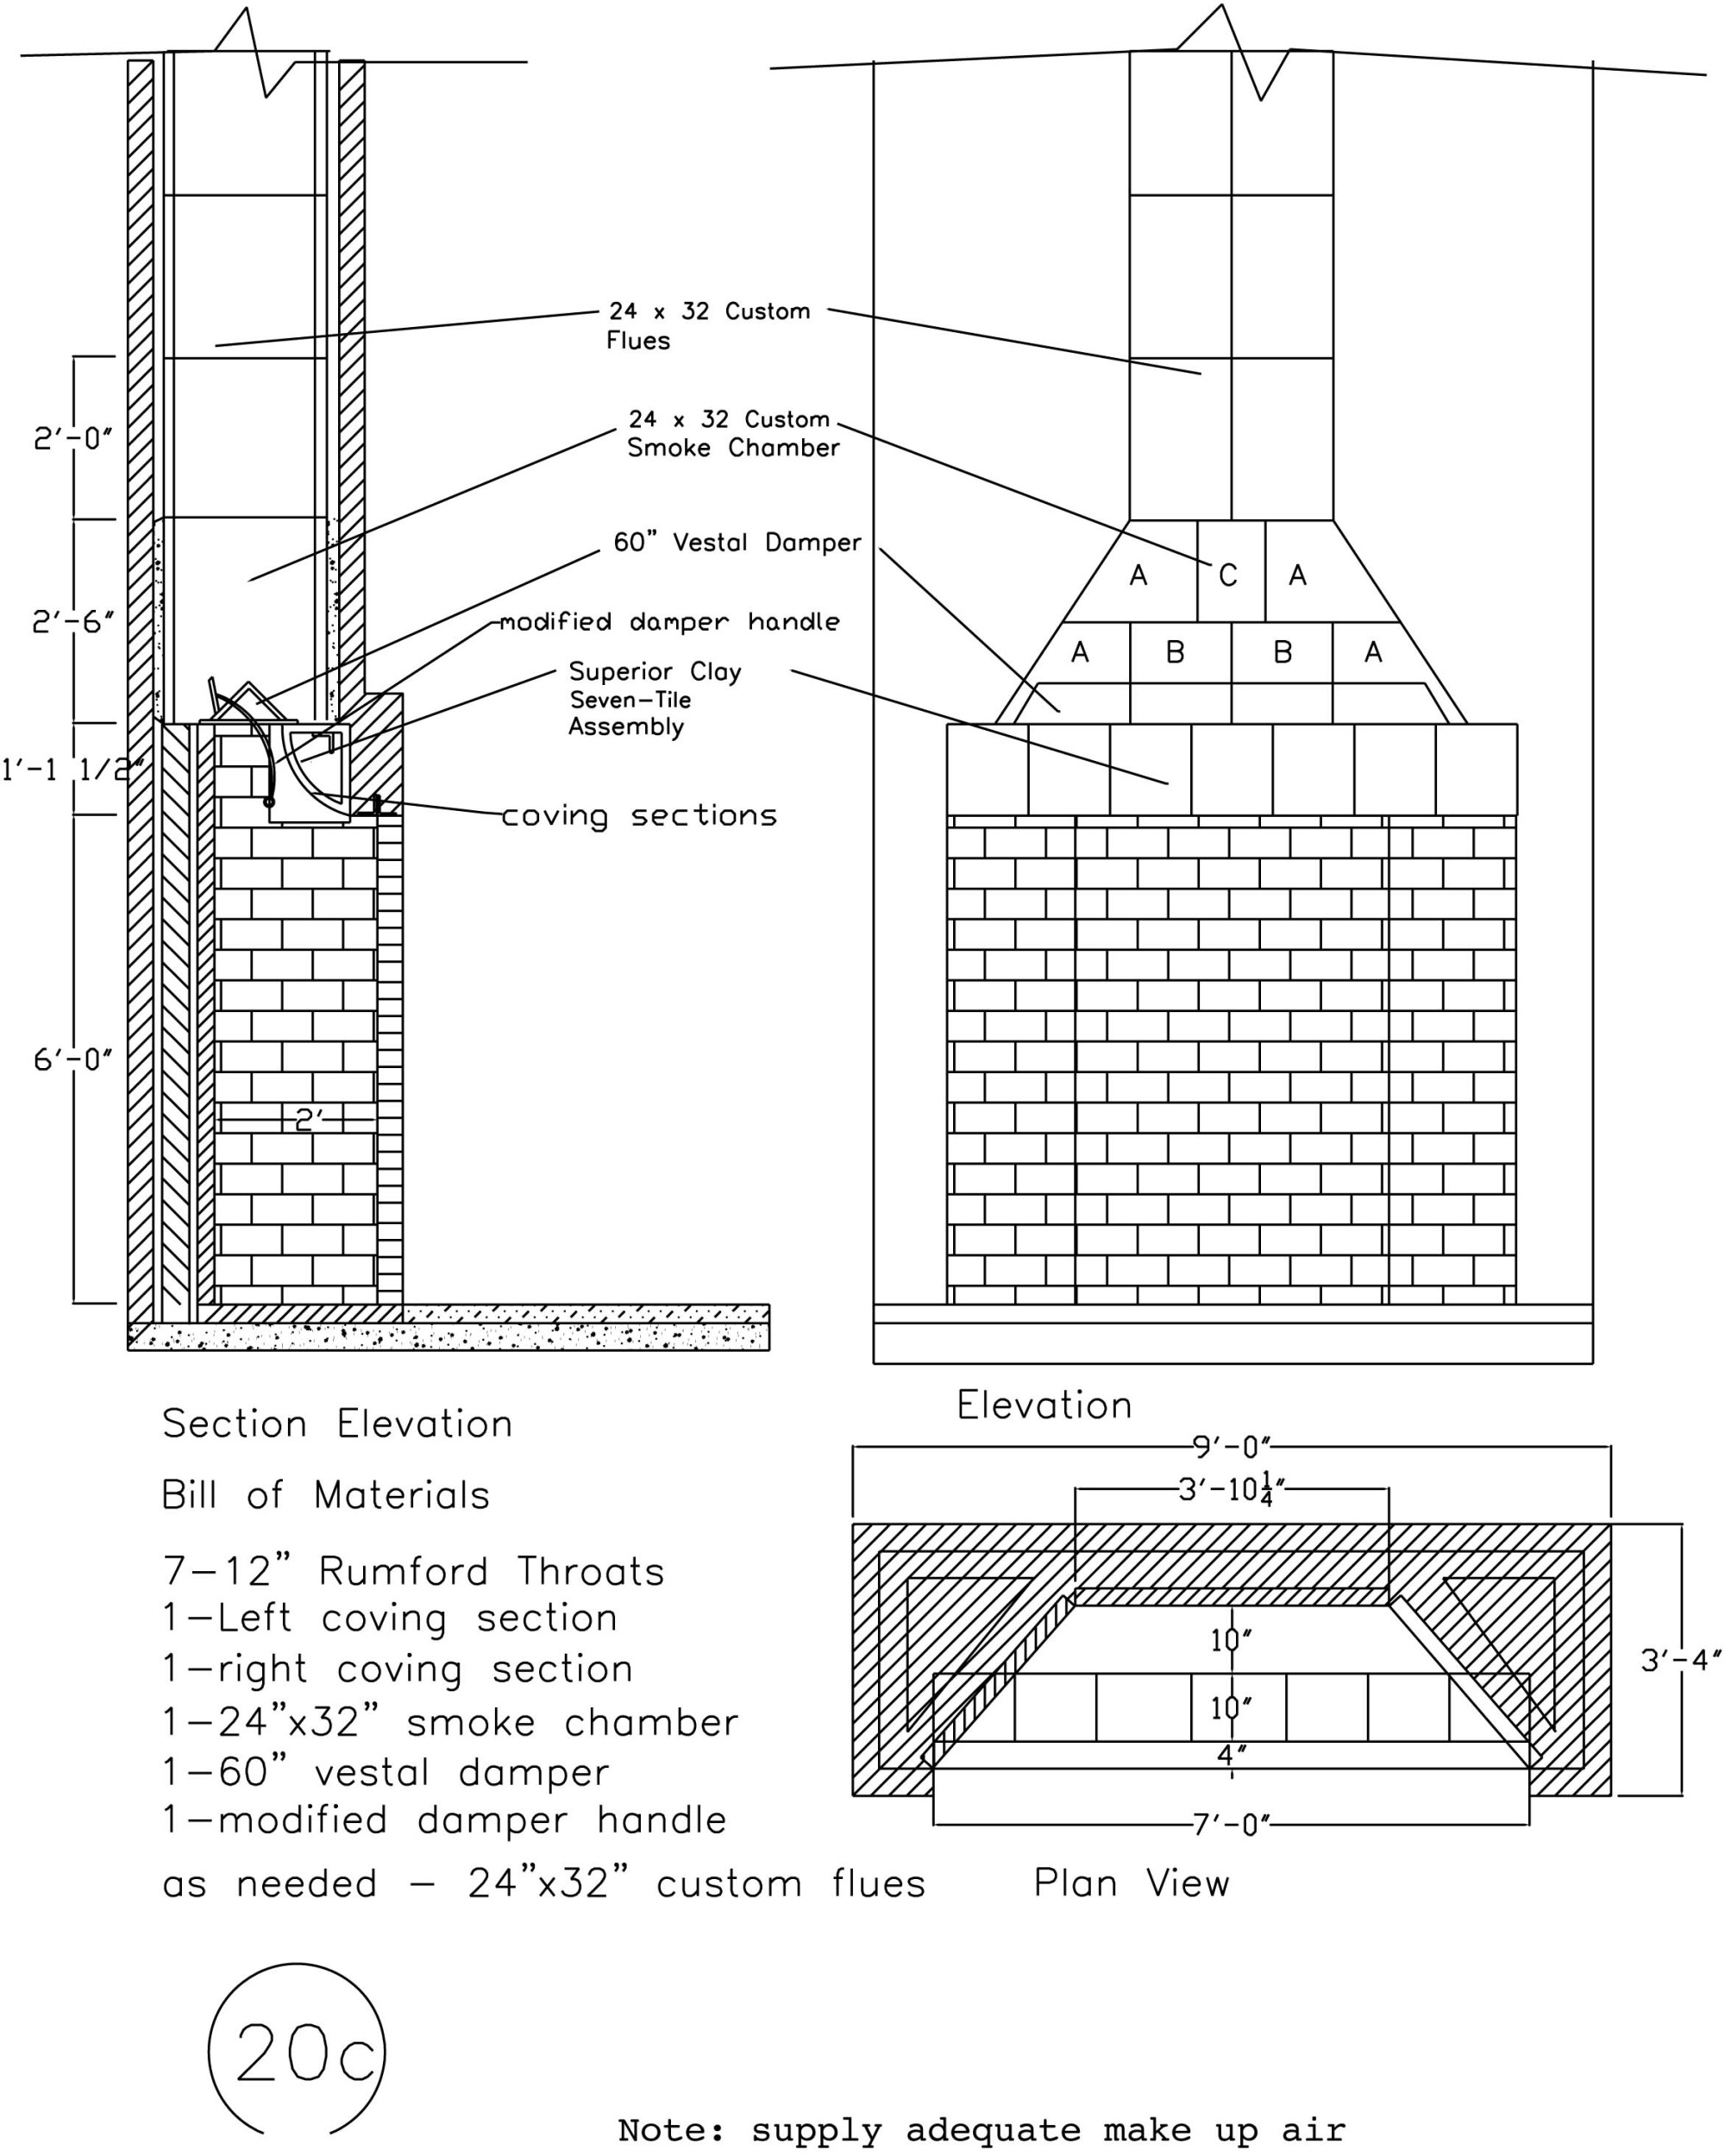 hight resolution of schematic with masonry fireplace dimensions illustration 1950 willys wagon 1952 willys